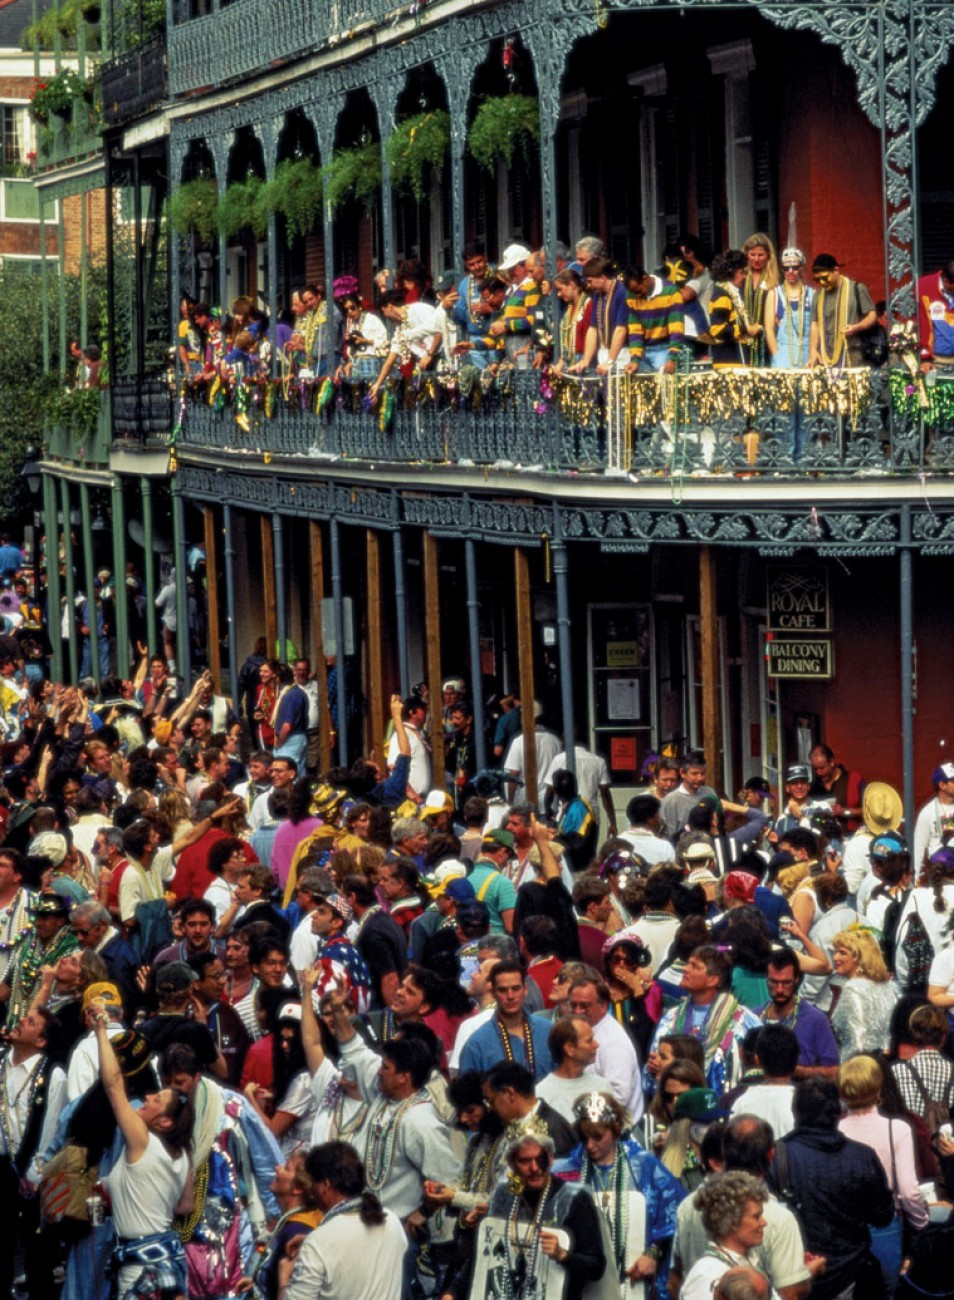 Mardi Gras 2015. A large crowd dancing in the Streets of the French Quarter